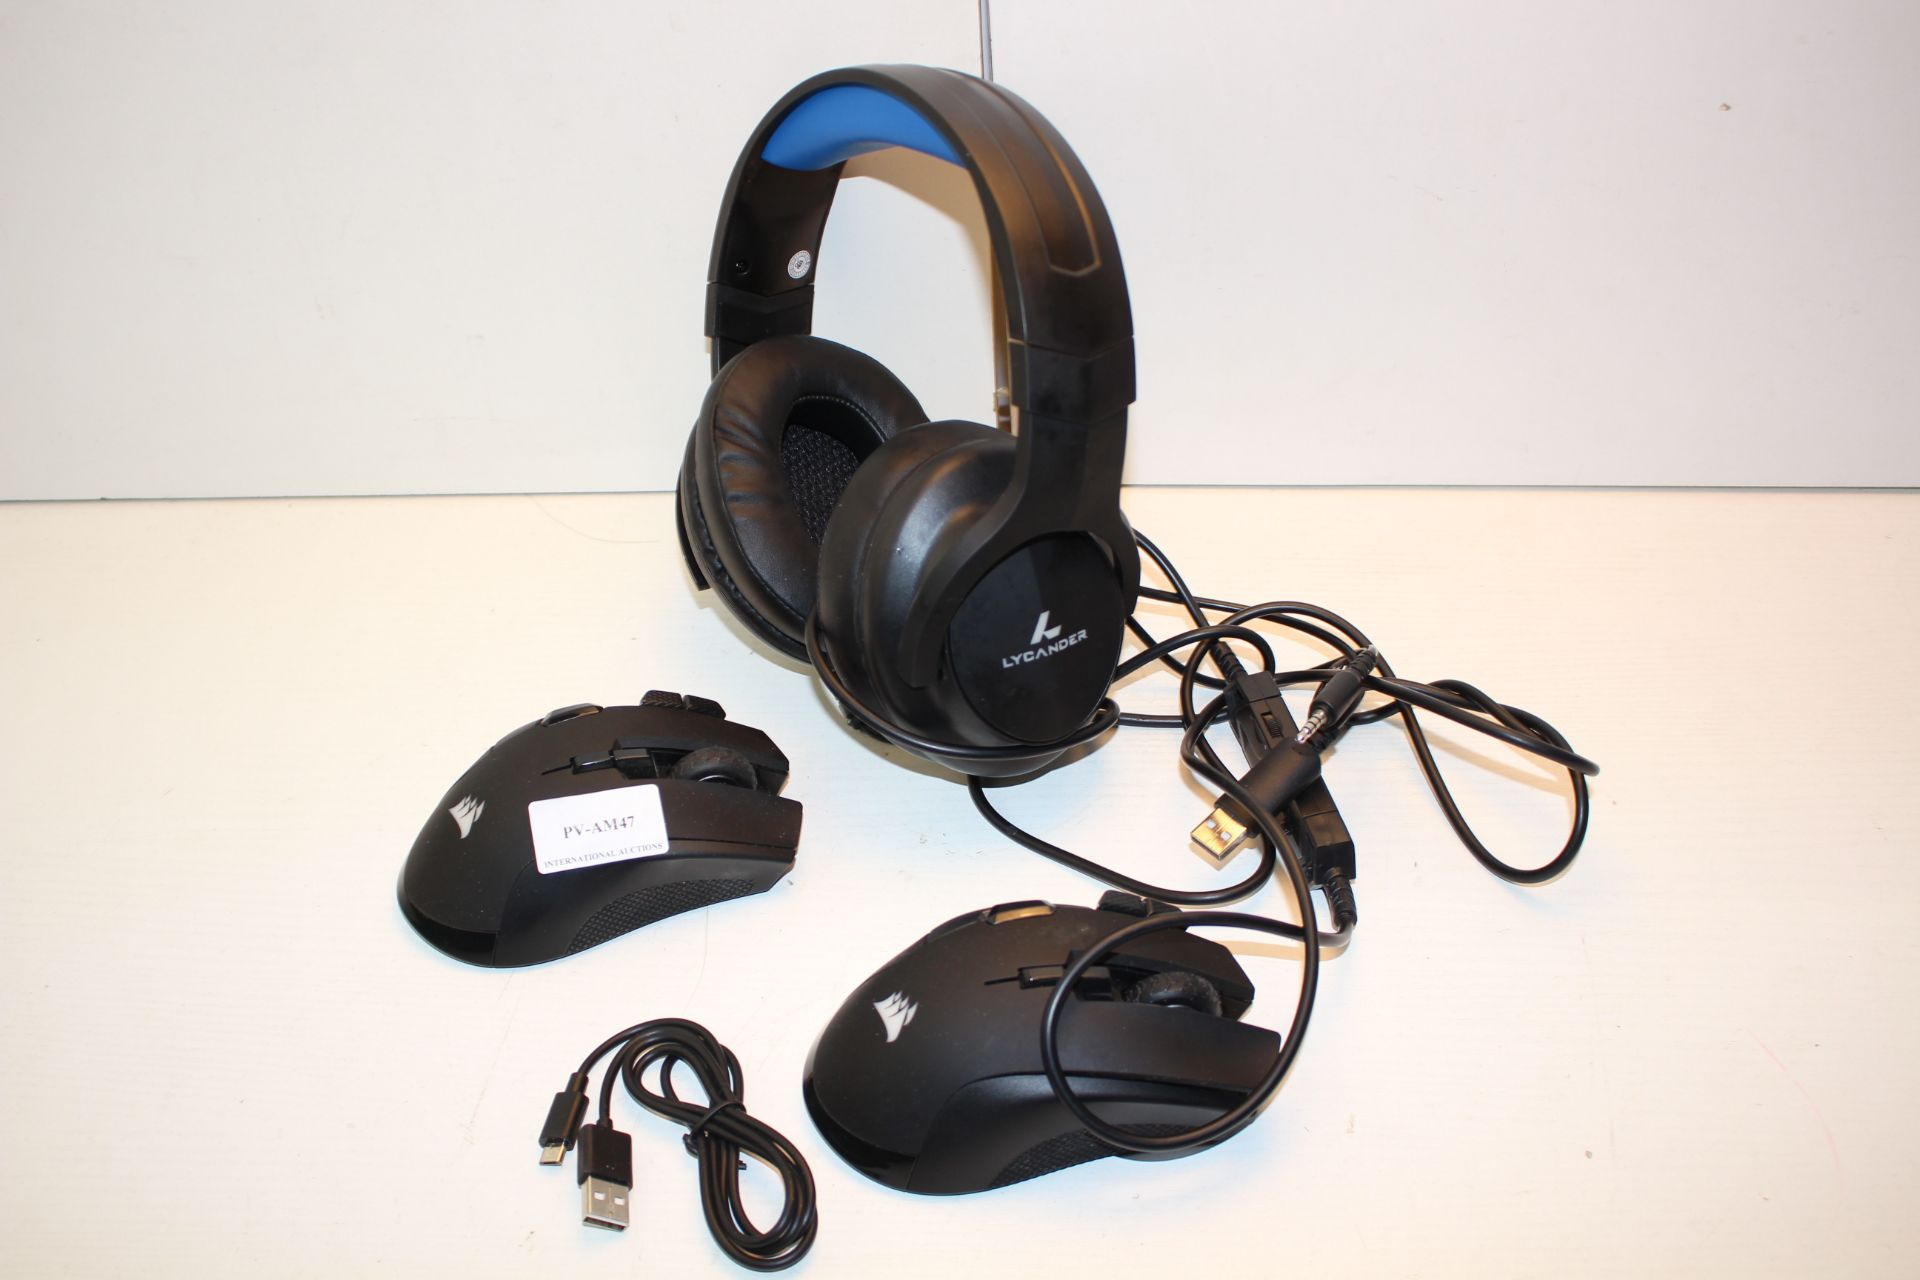 3X ASSORTED ITEMS TO INCLUDE CORSAIR MOUSE'S & GAMING HEADSET Condition ReportAppraisal Available on